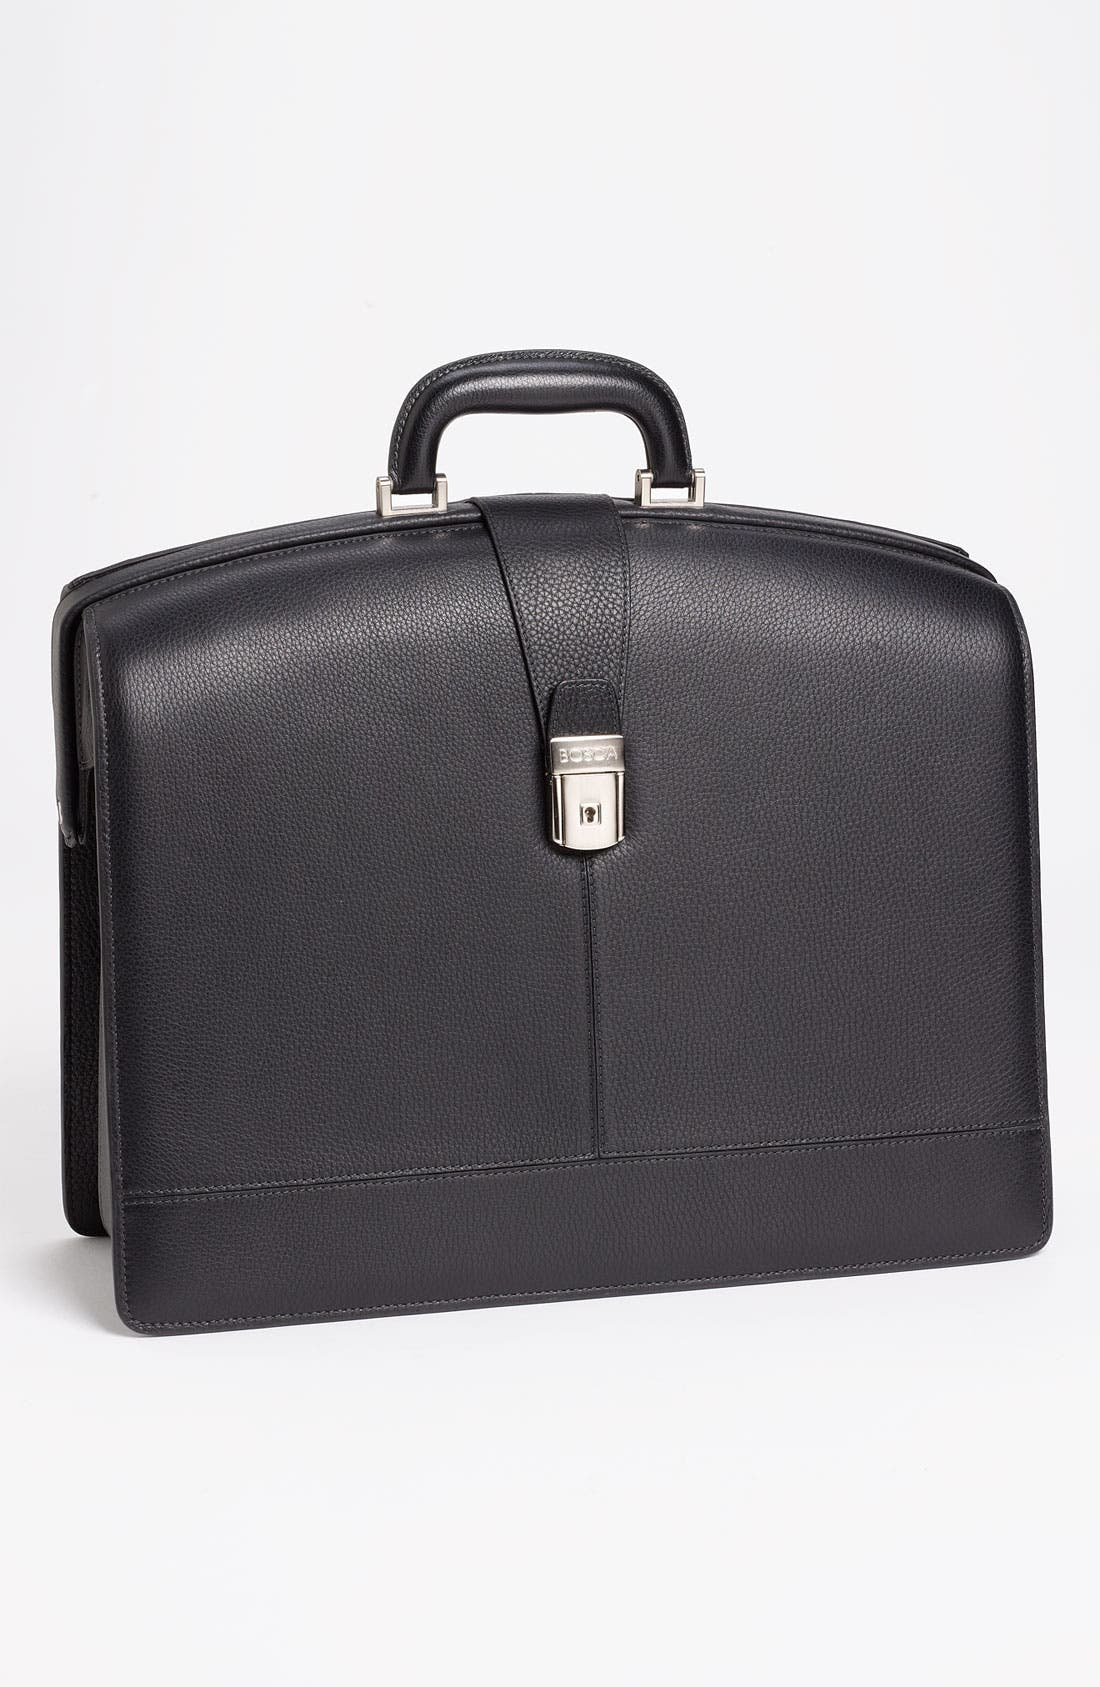 Main Image - Bosca 'Partners' Briefcase